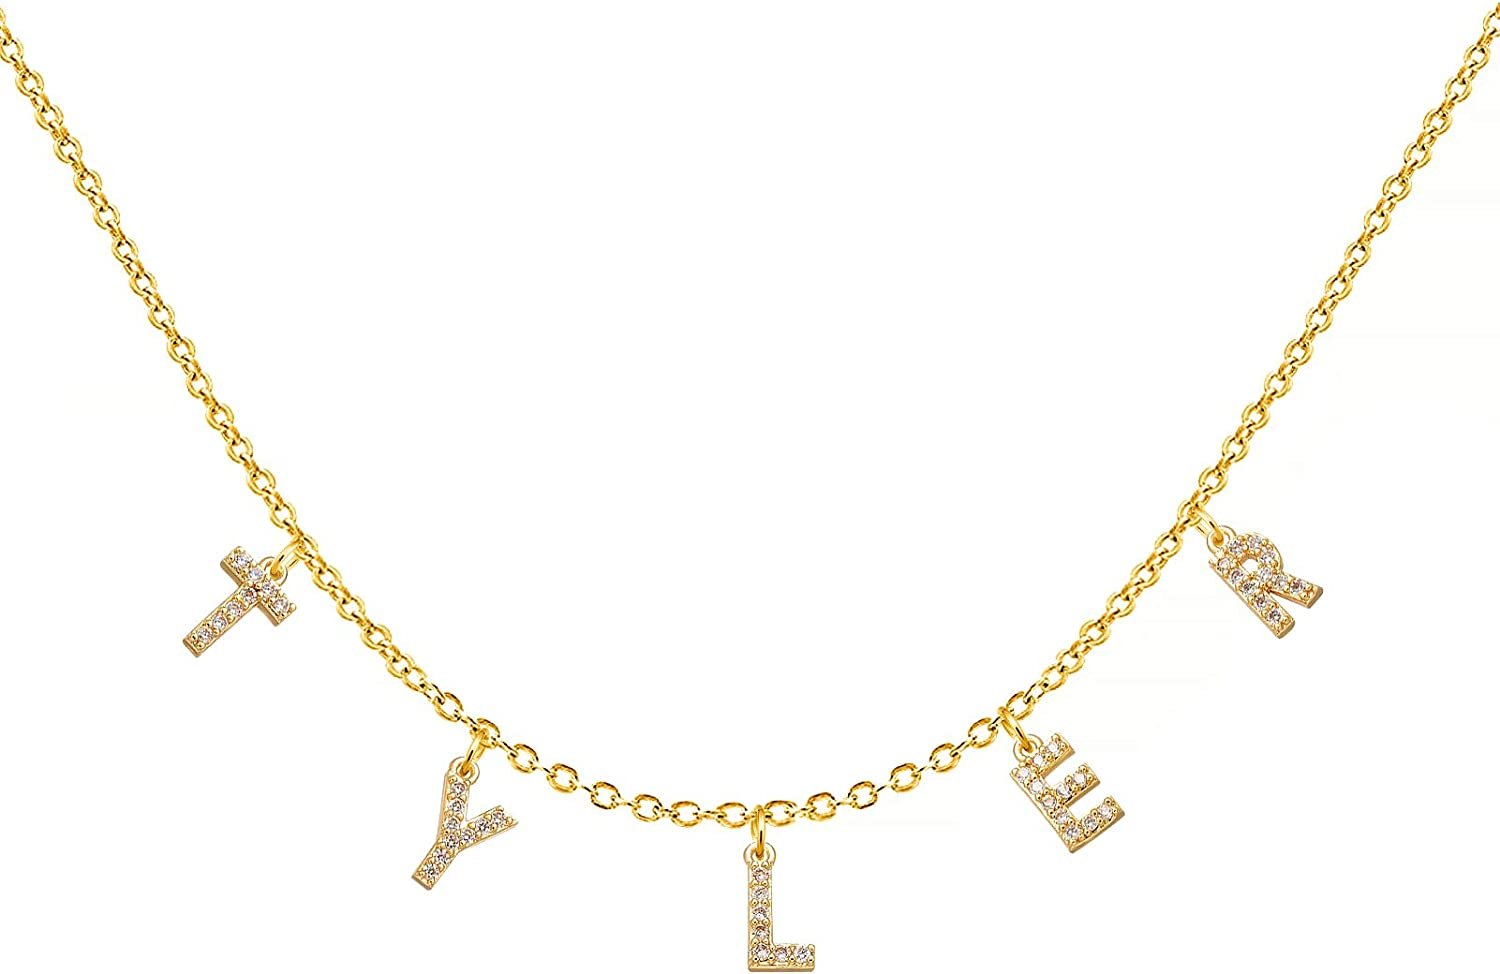 YSAHan Iced Name Choker Necklace Personlized 18K Gold Plated Speced Out Initial Script Nameplate Pendant Jewelry Gift for Women Girls